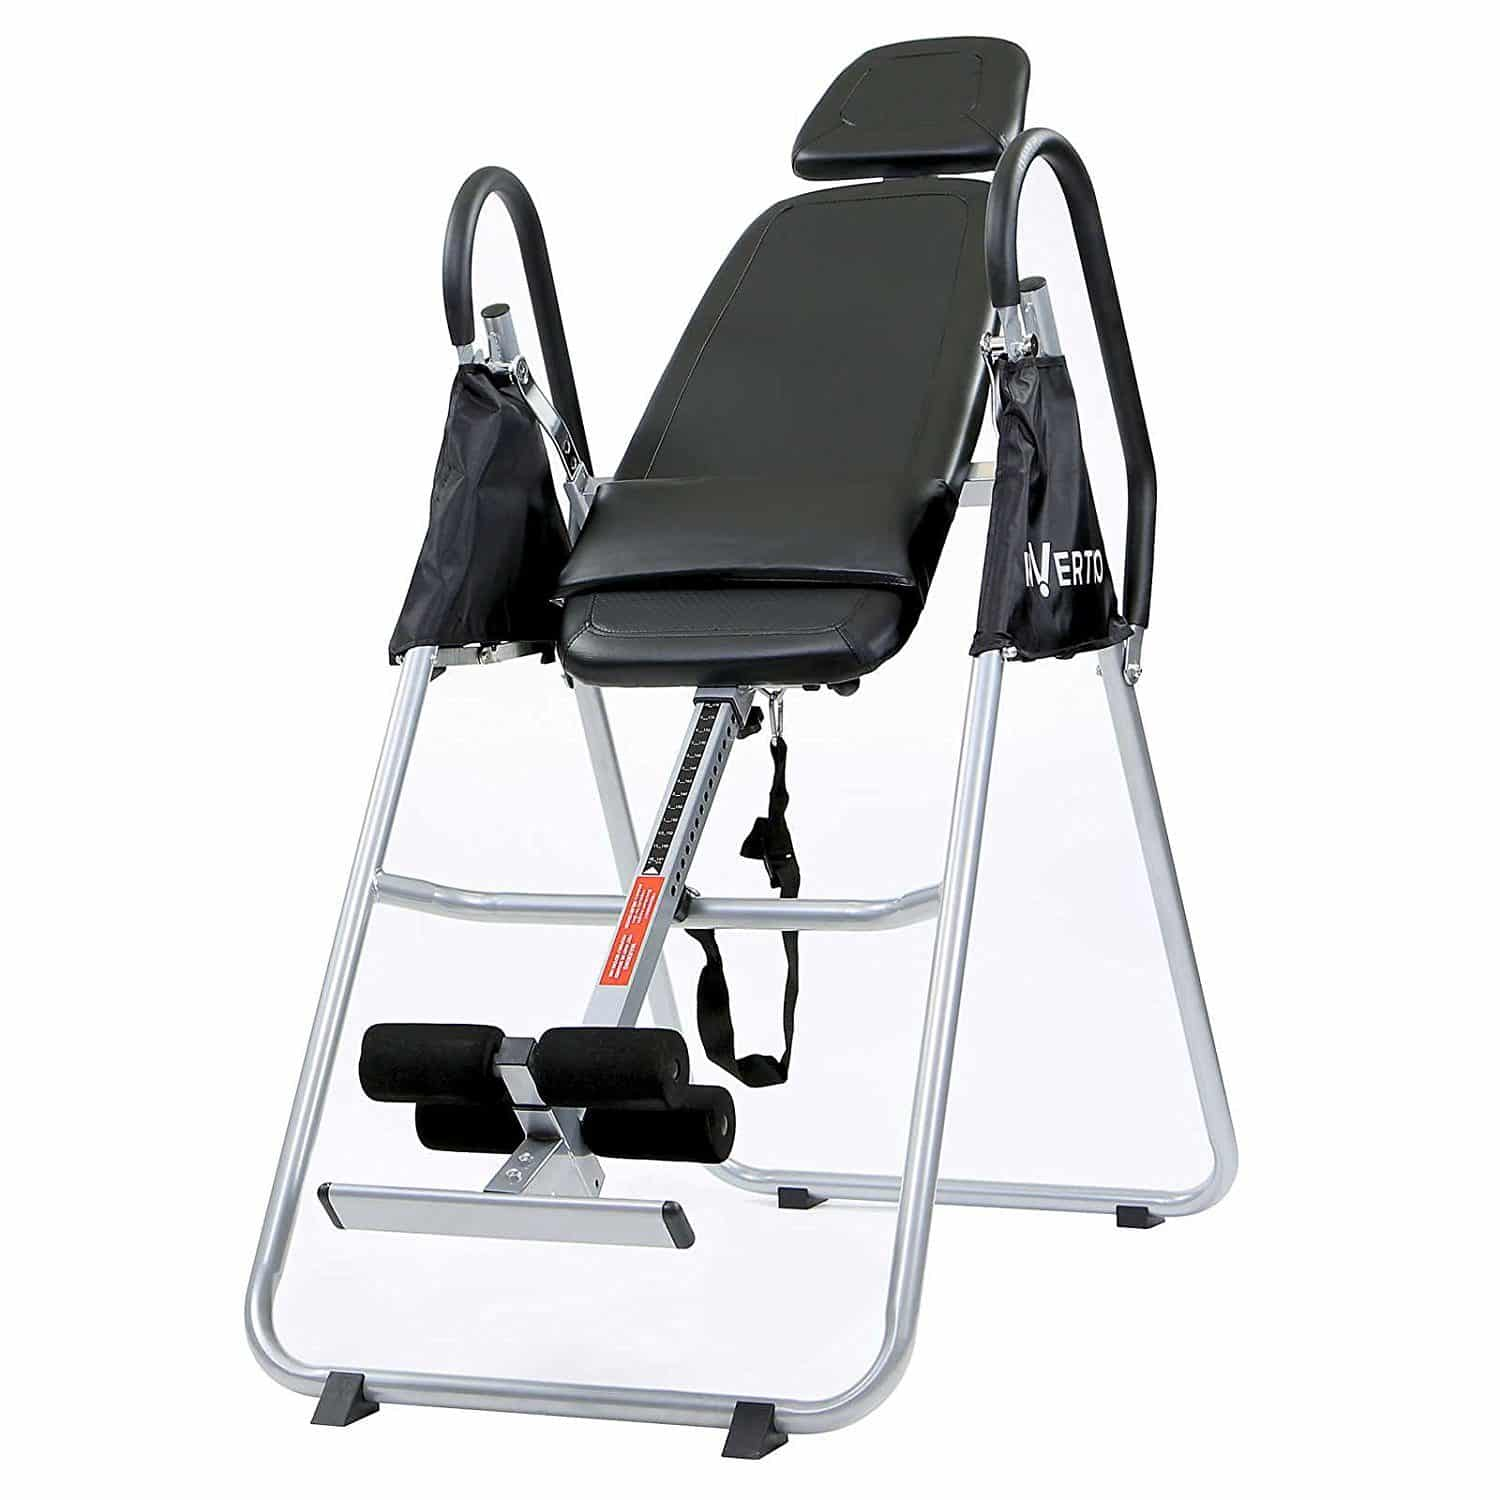 Invertio Premium Folding Inversion Table